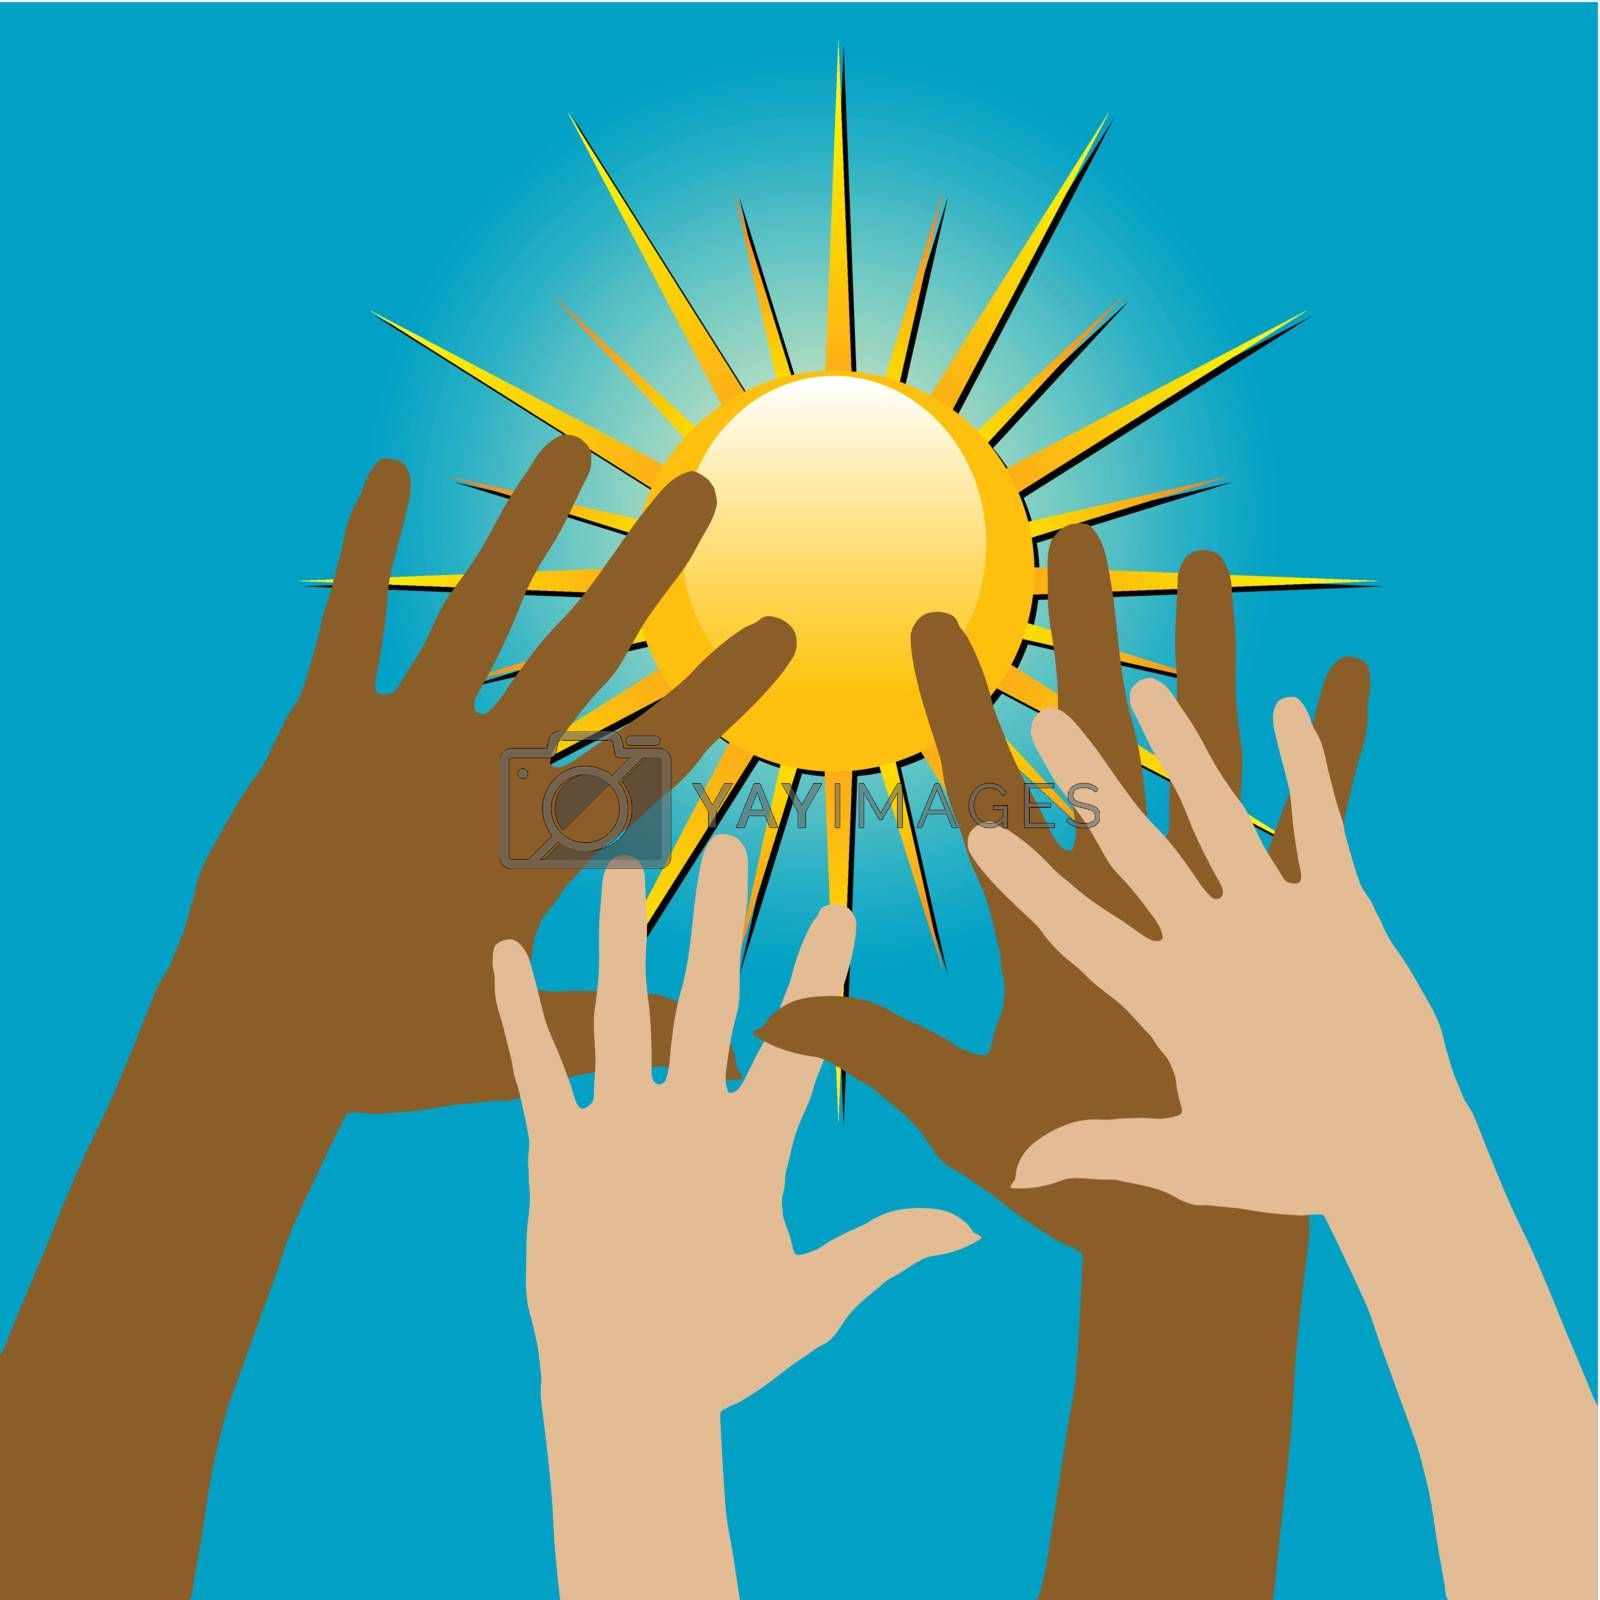 Royalty free image of Hands over the Sun by ajn